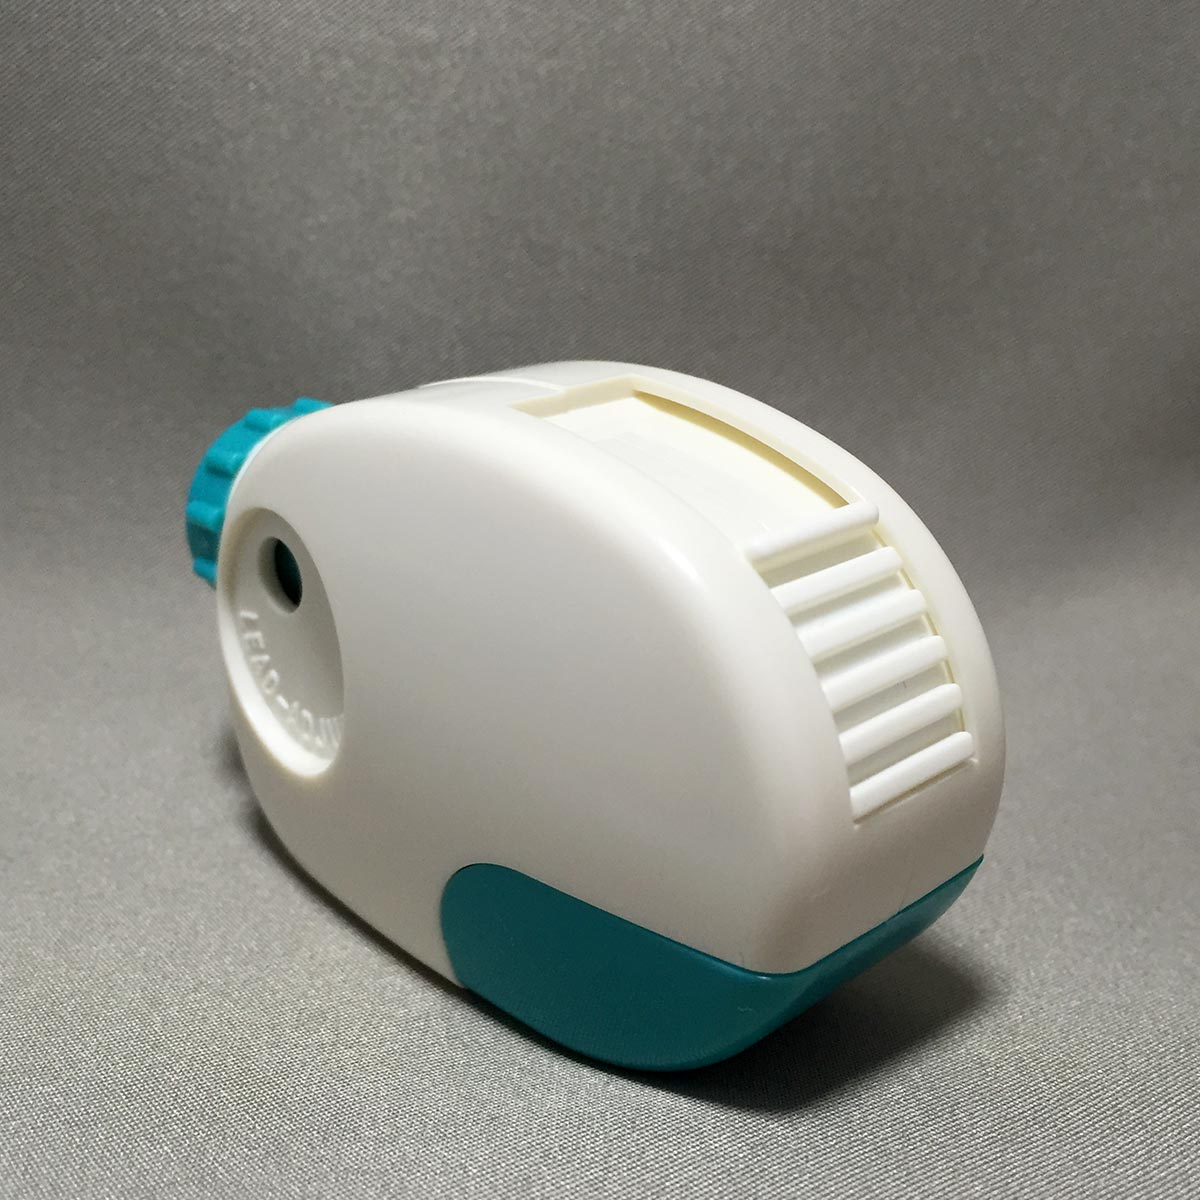 kezutta kun pencil sharpener - 45 Side View closed